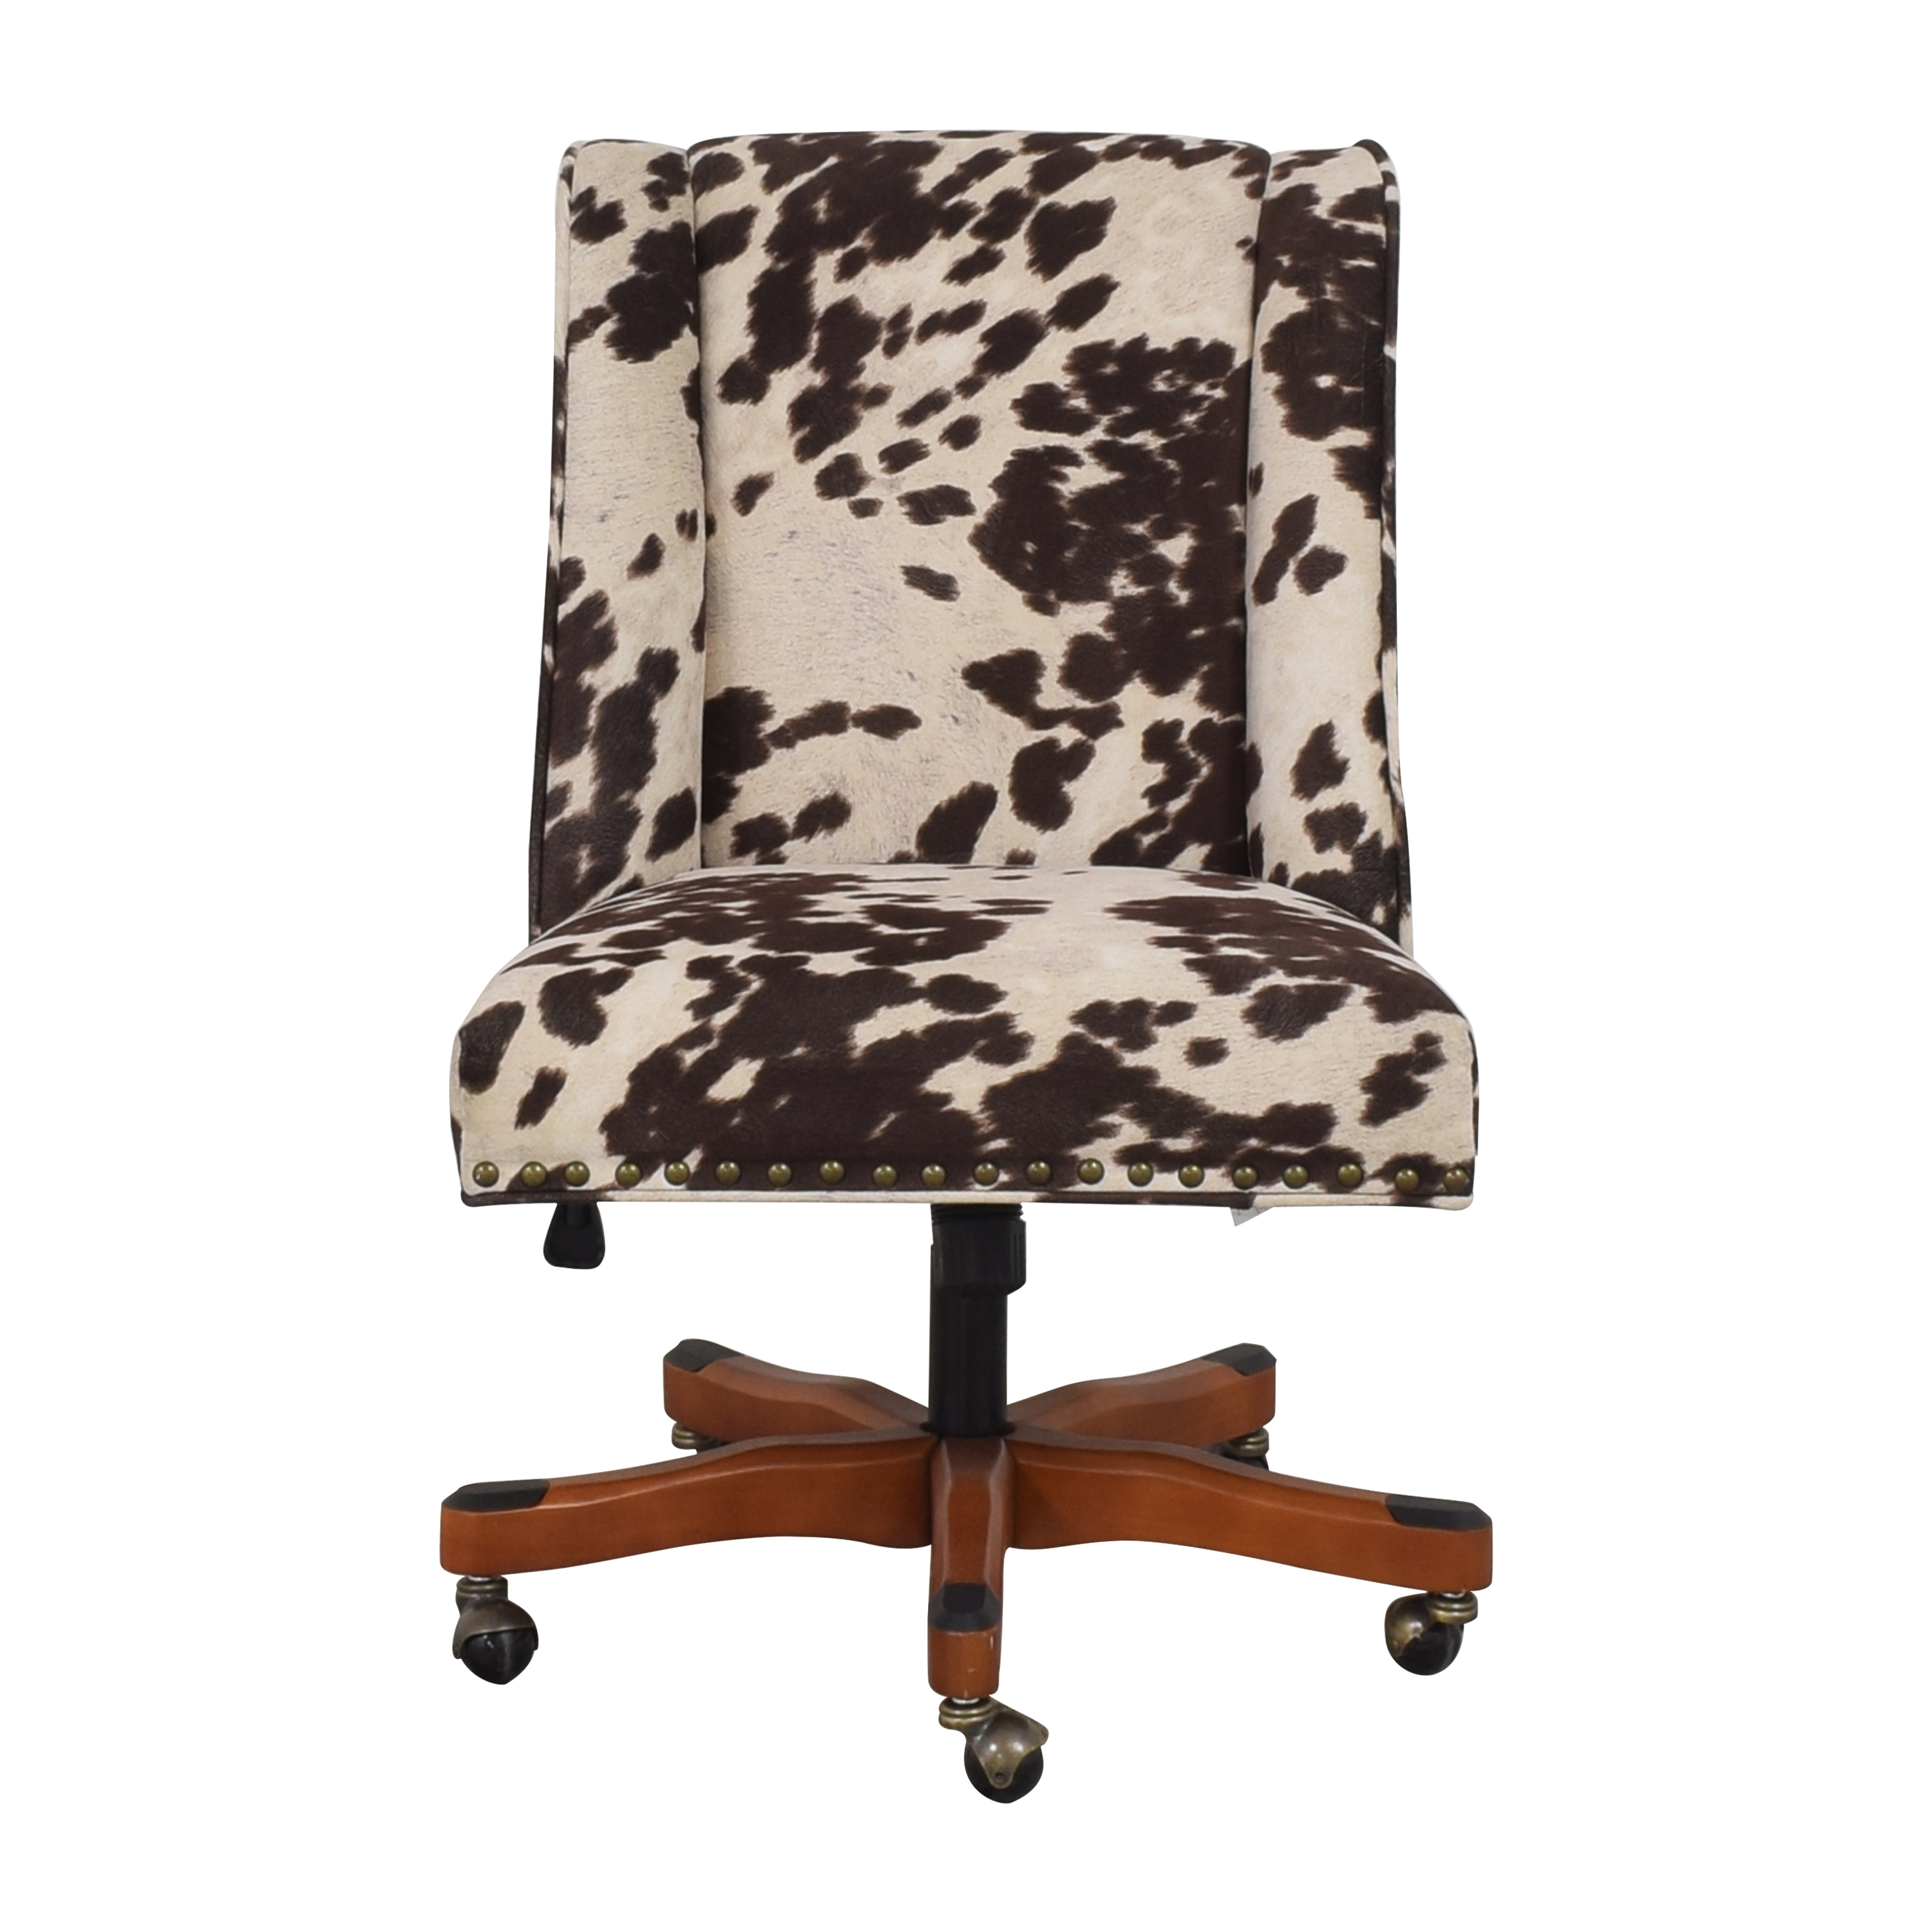 Linon Home Decor Linon Home Decor Wells Upholstered Swivel Office Chair for sale